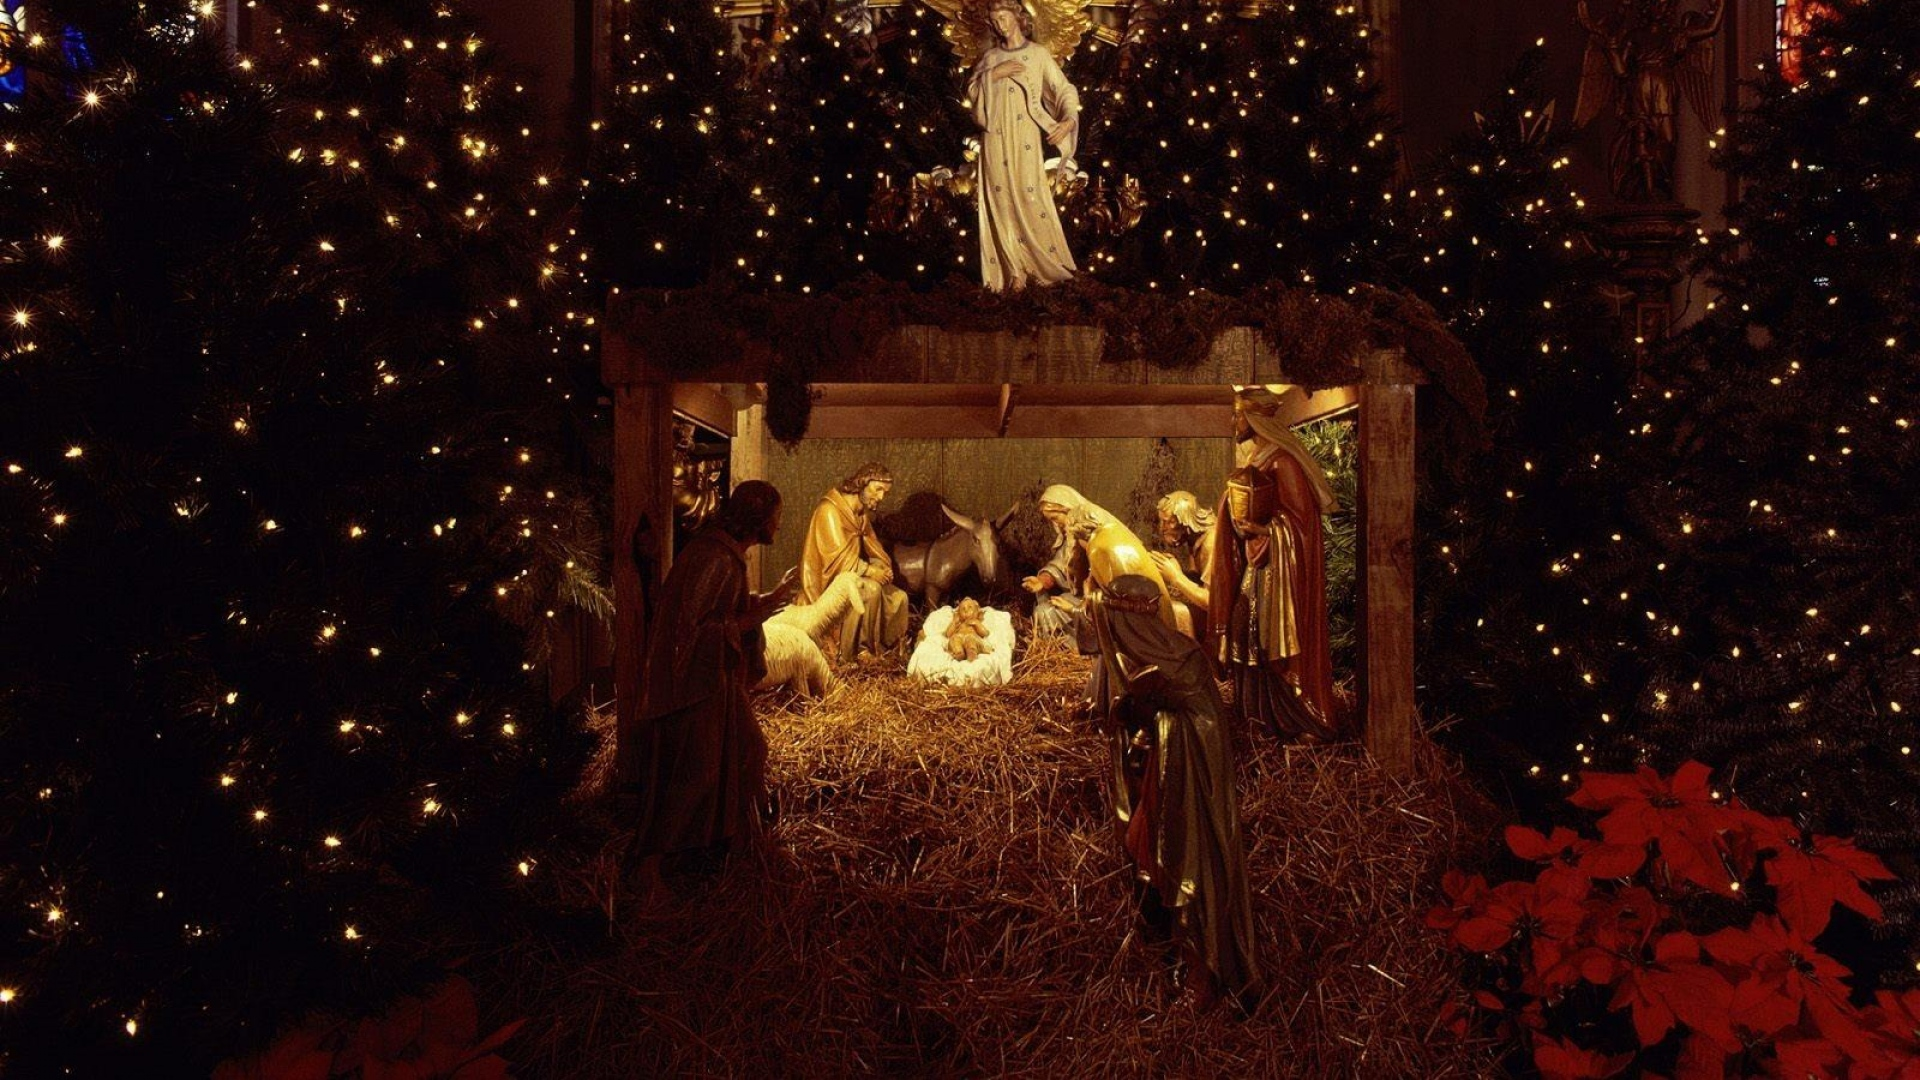 Download Wallpaper 1920x1080 Christmas Jesus Nurseries